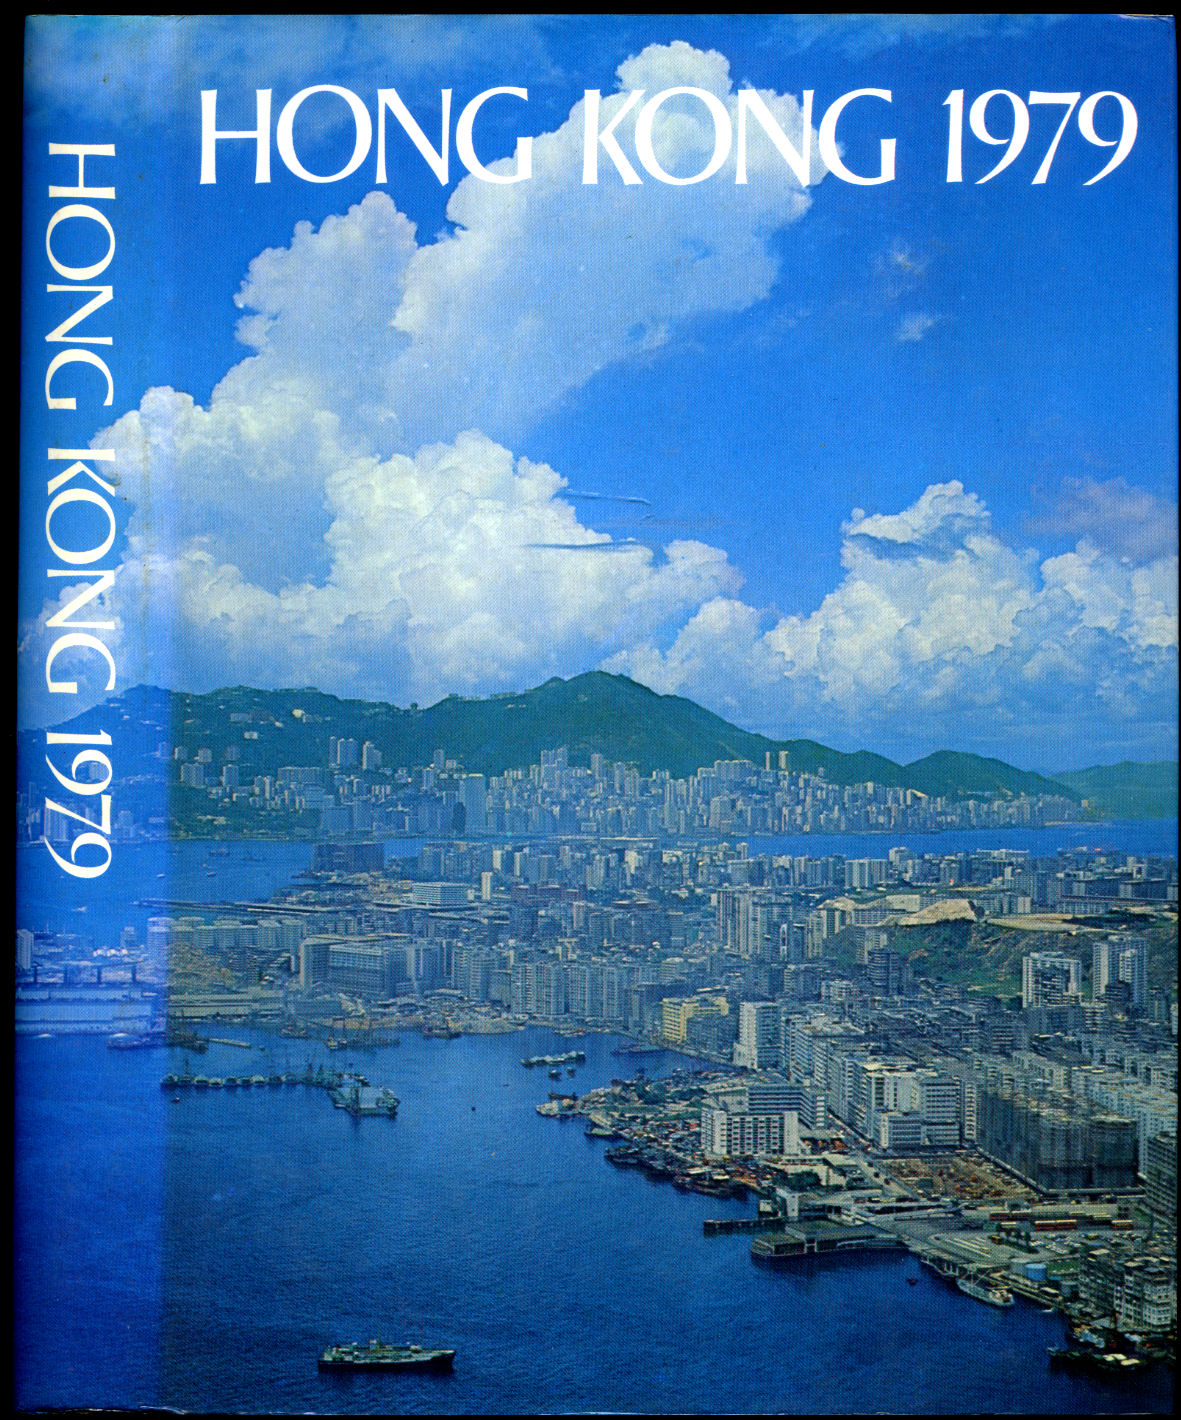 WOOD, DIANNE (EDITOR) HONG KONG GOVERNMENT PRESS - Hong Kong Annual Year Book 1979   A Review of the Year 1978